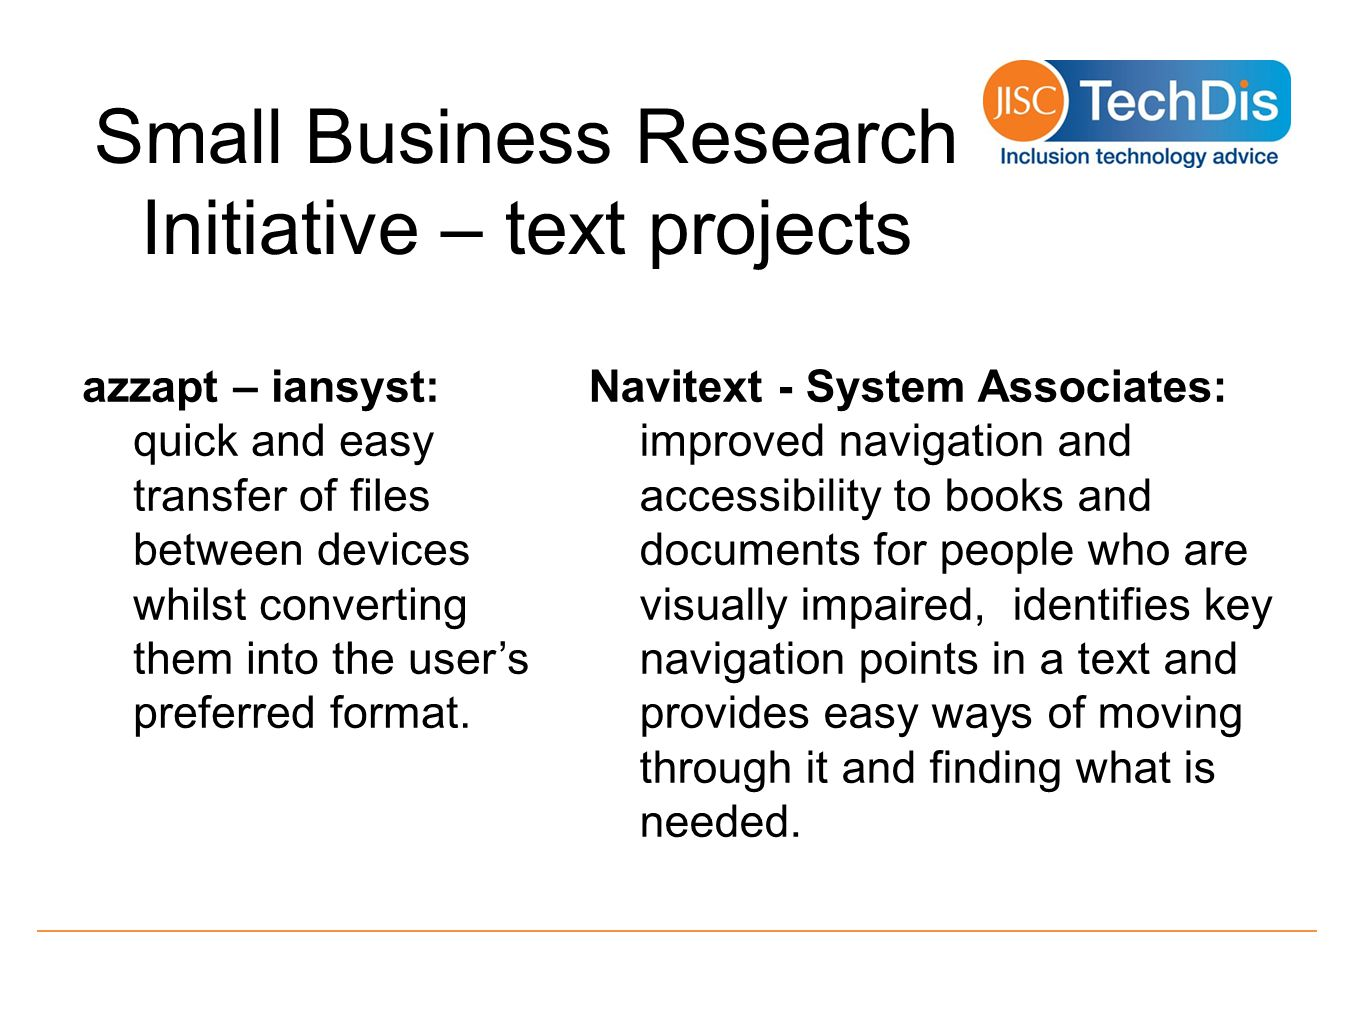 Small Business Research Initiative – text projects azzapt – iansyst: quick and easy transfer of files between devices whilst converting them into the users preferred format.